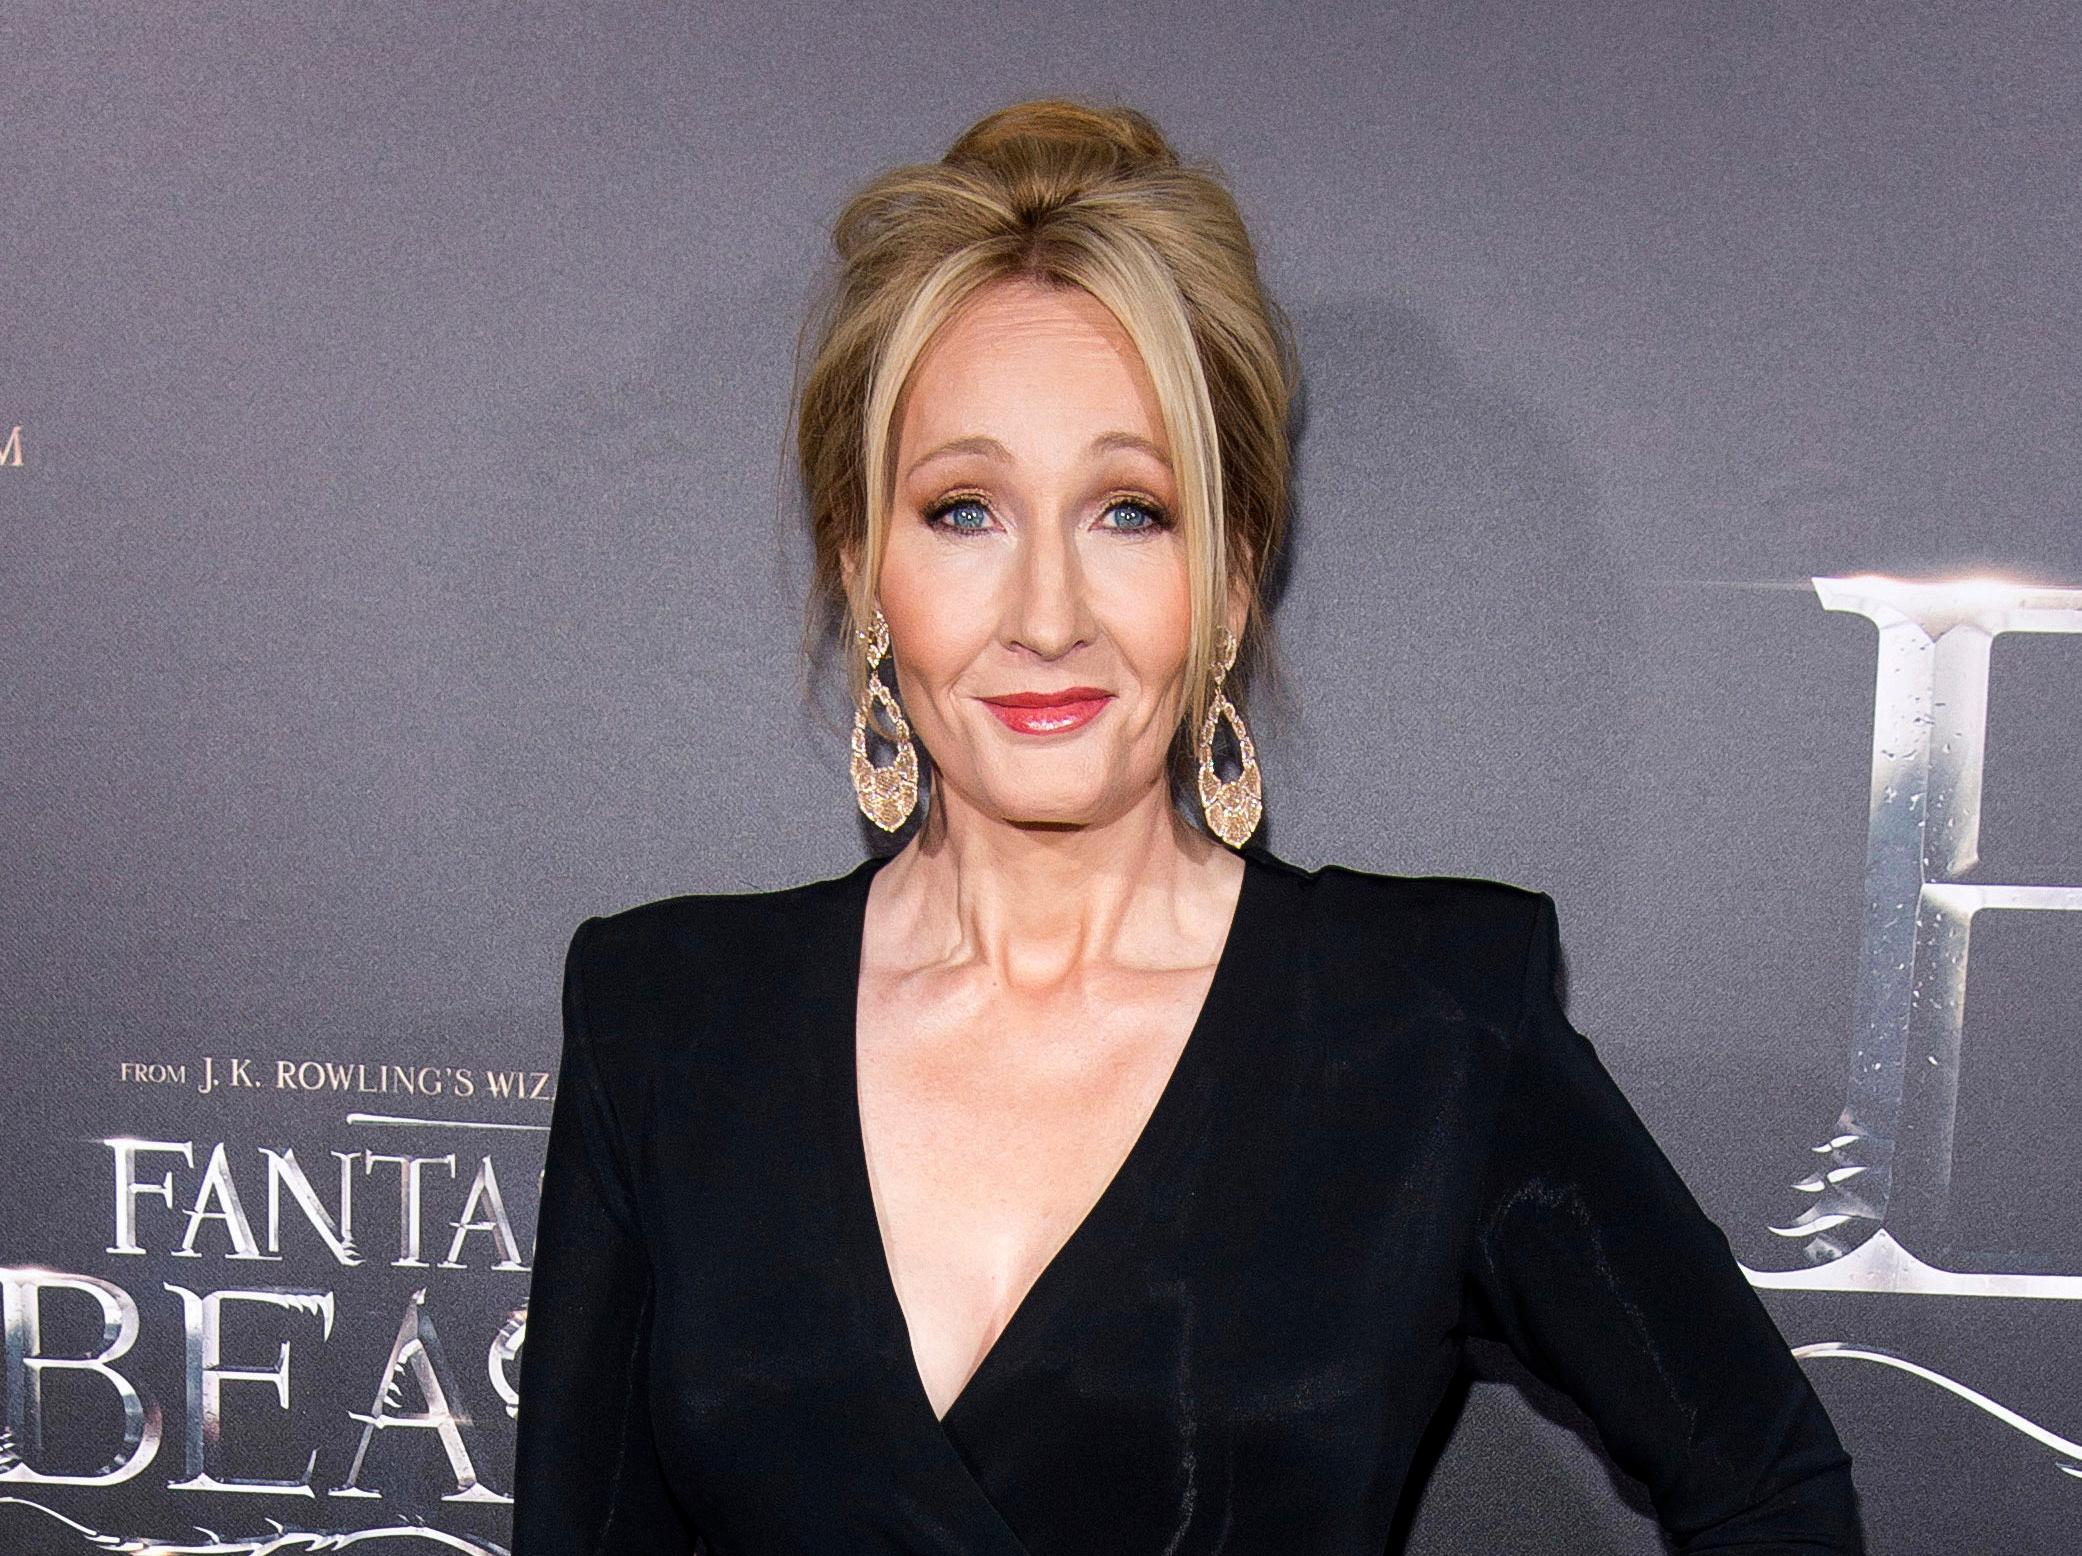 "FILE - In this Nov. 10, 2016 file photo, J. K. Rowling attends the world premiere of ""Fantastic Beasts and Where To Find Them"" in New York. The stage play ""Harry Potter and the Cursed Child"" will come to Broadway's The Lyric Theatre in the spring of 2018, producers said Thursday, May 4, 2017, with an opening set for April. The play recently won nine Olivier Awards in London, including best new play. (Photo by Charles Sykes/Invision/AP, File)"